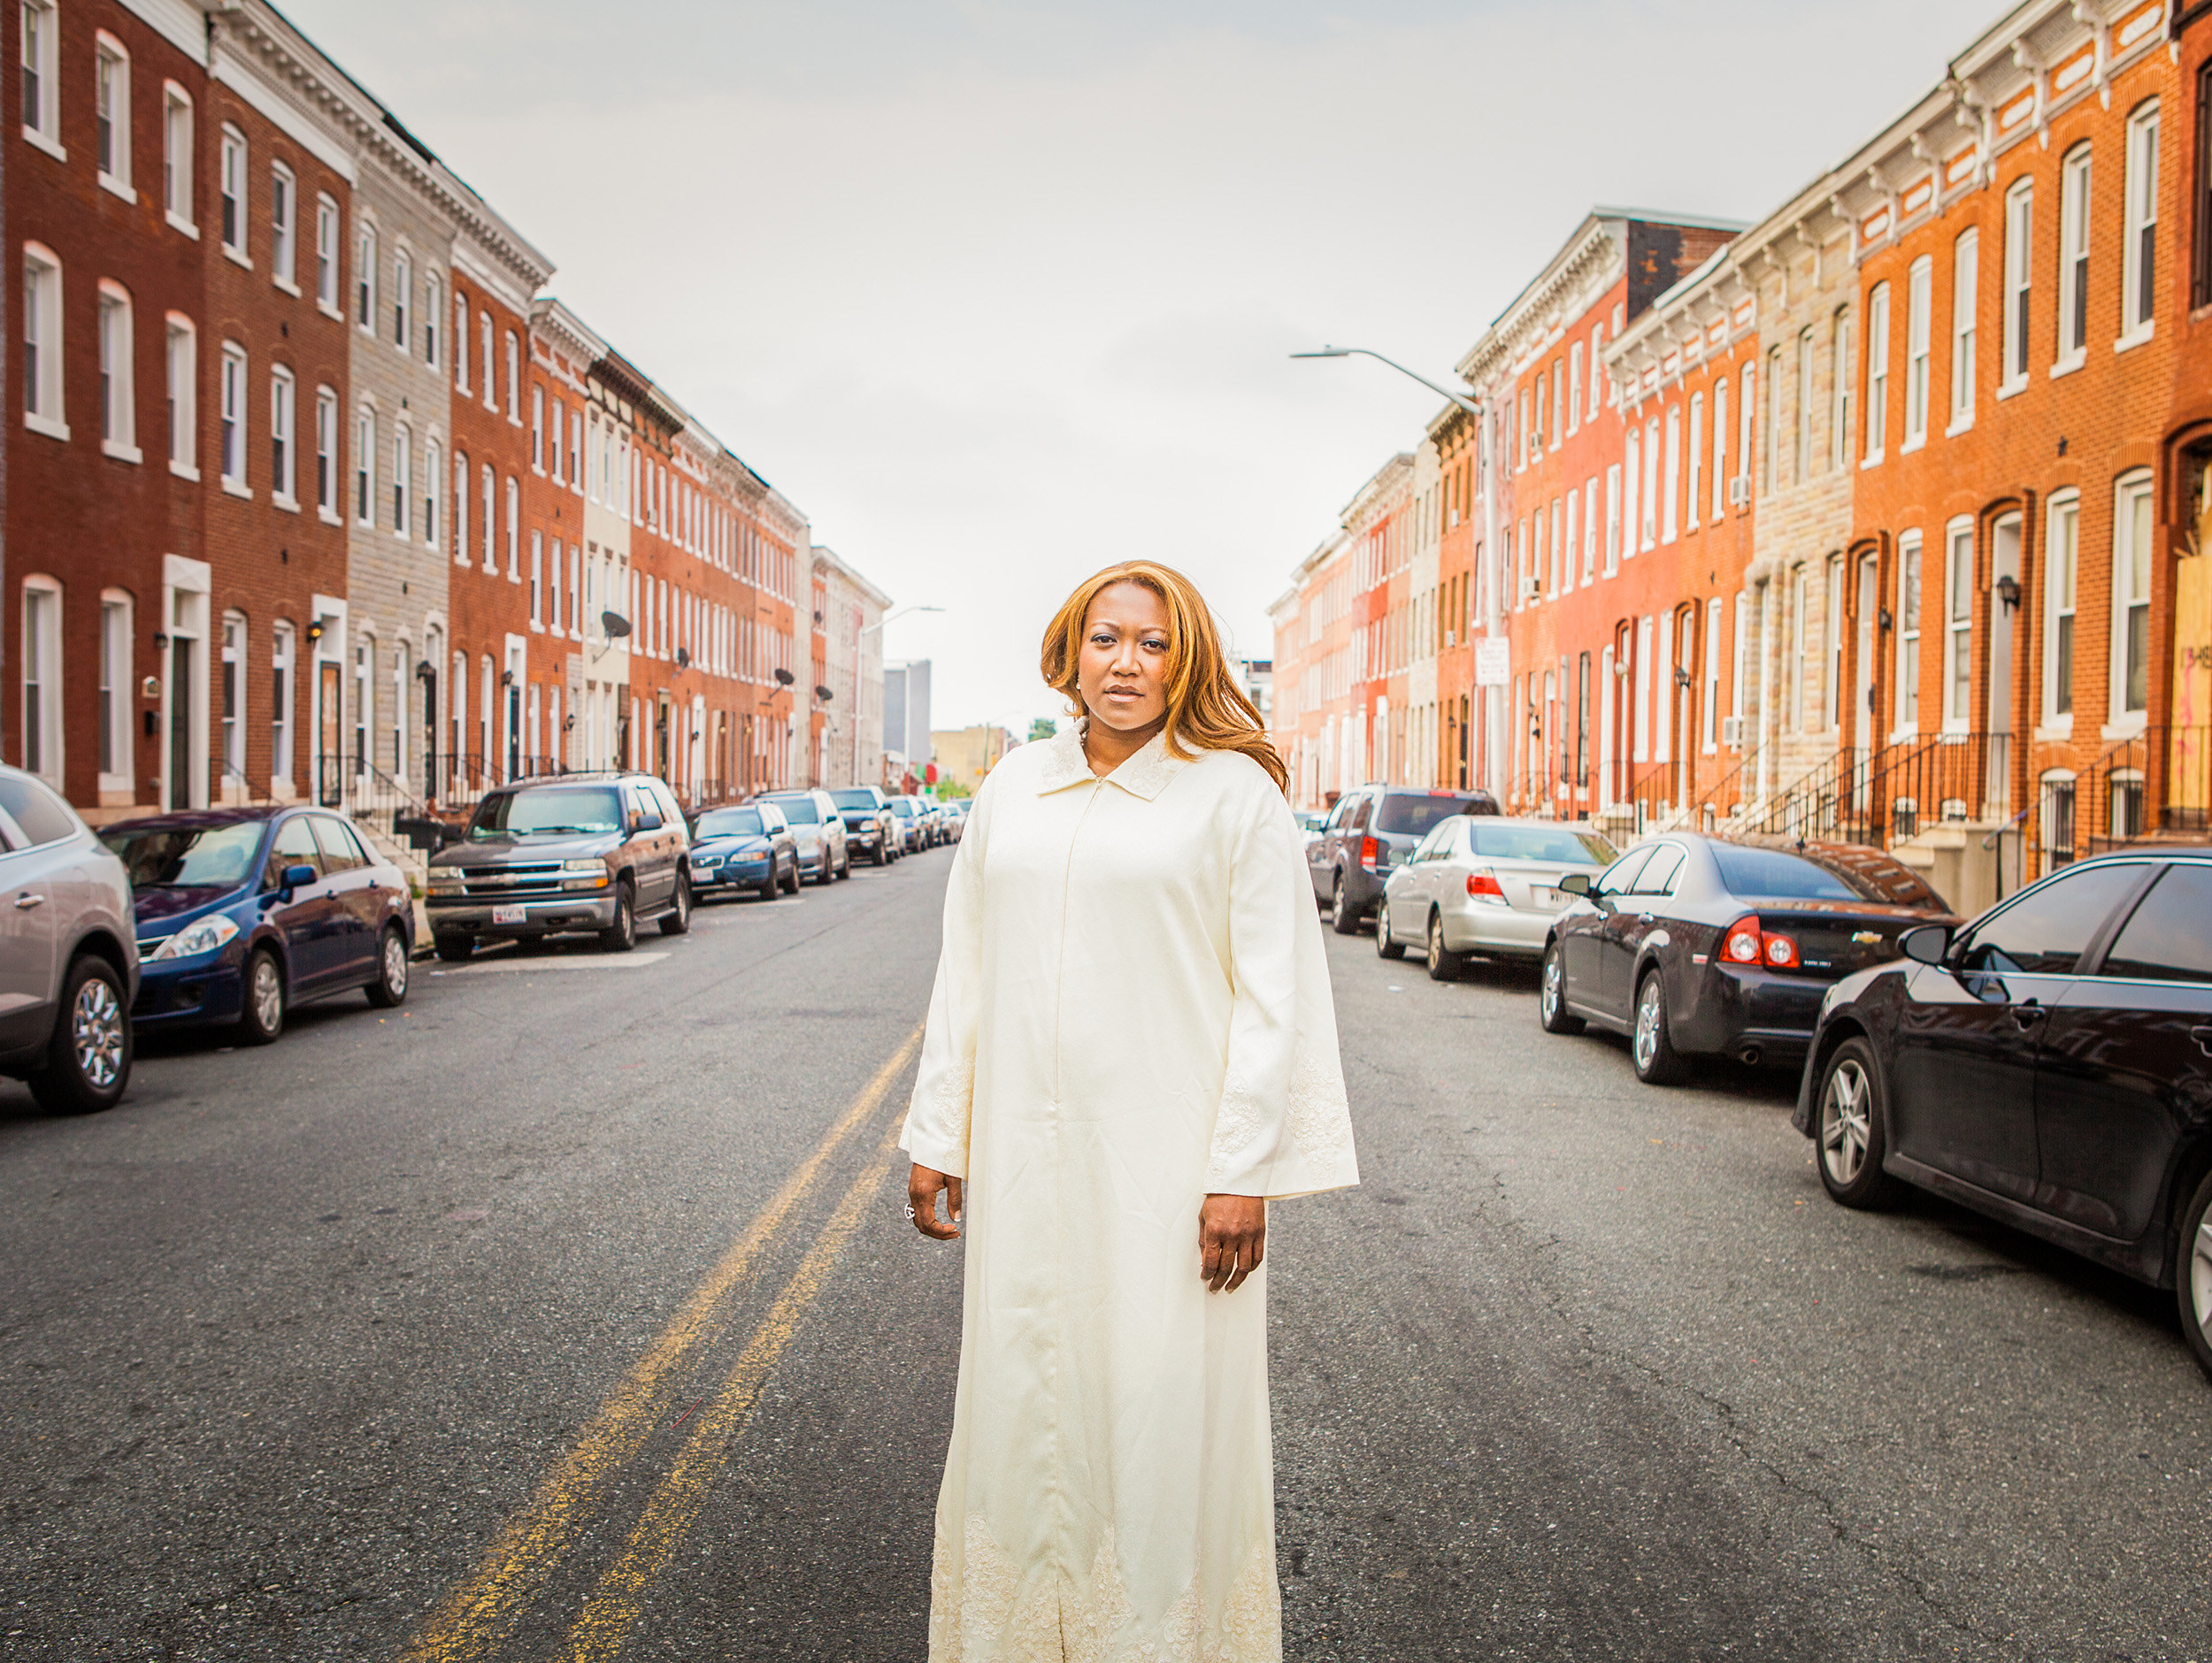 A woman in white robes on a street in Baltimore with brick row houses